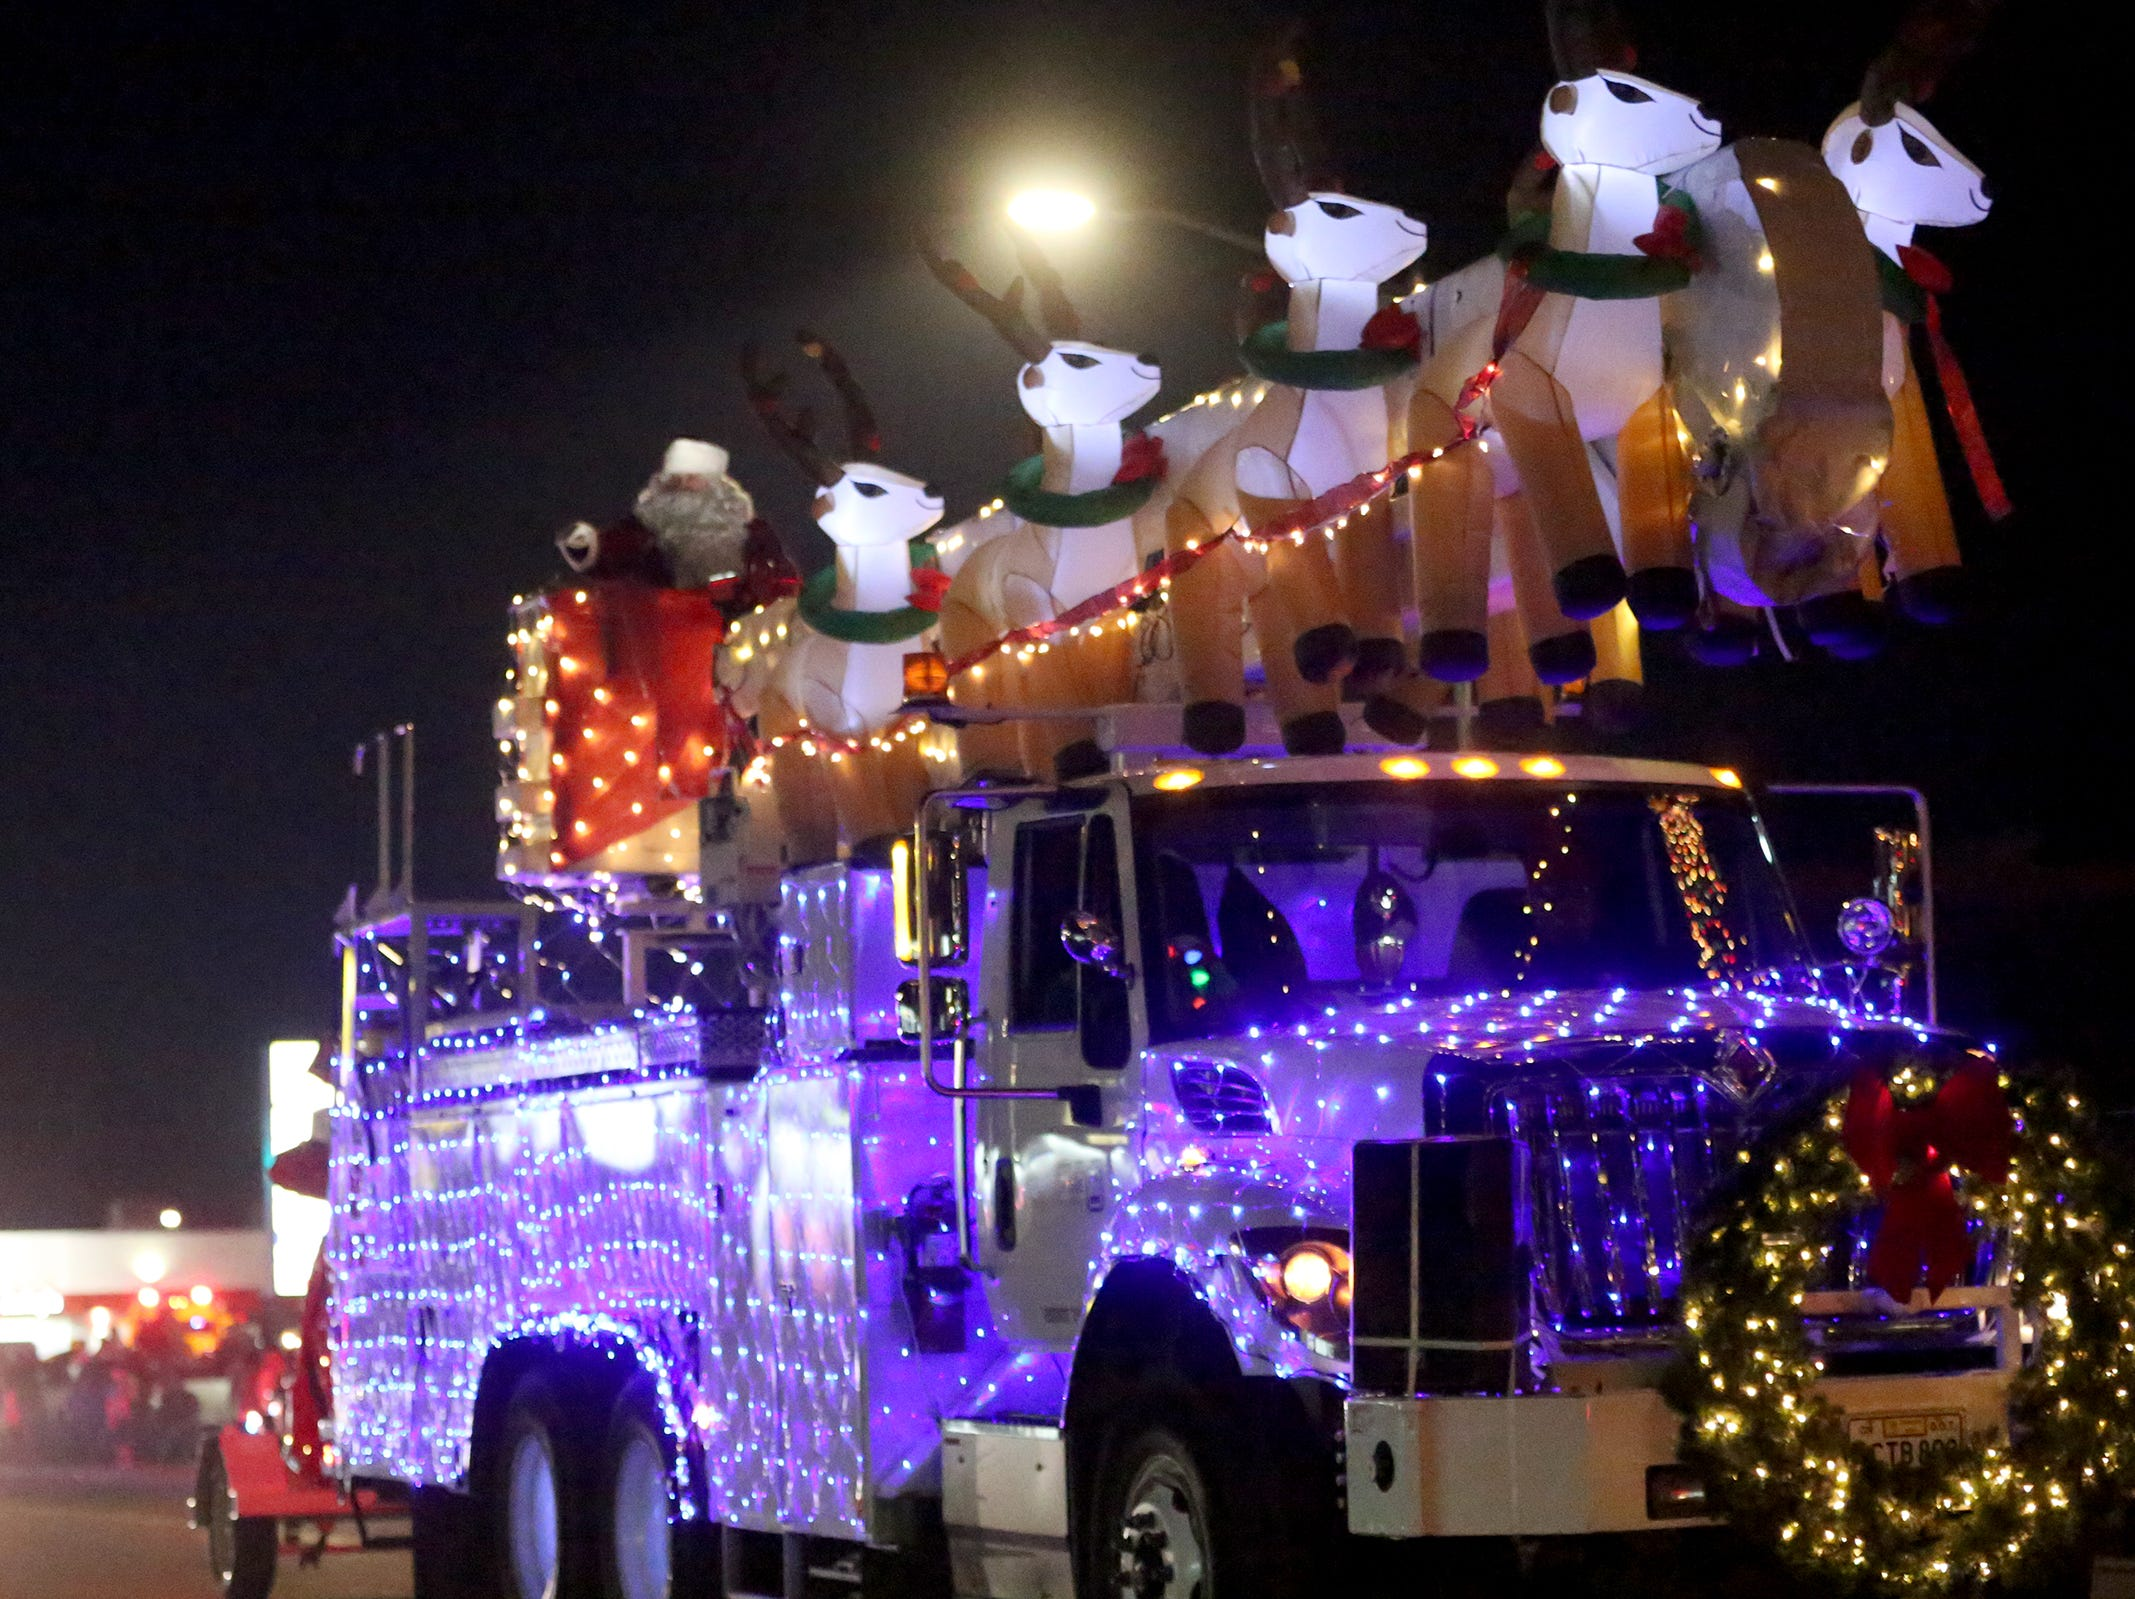 Santa's float marked the end of the Keizer Holiday Lights Parade in Keizer on Saturday, Dec. 8, 2018.